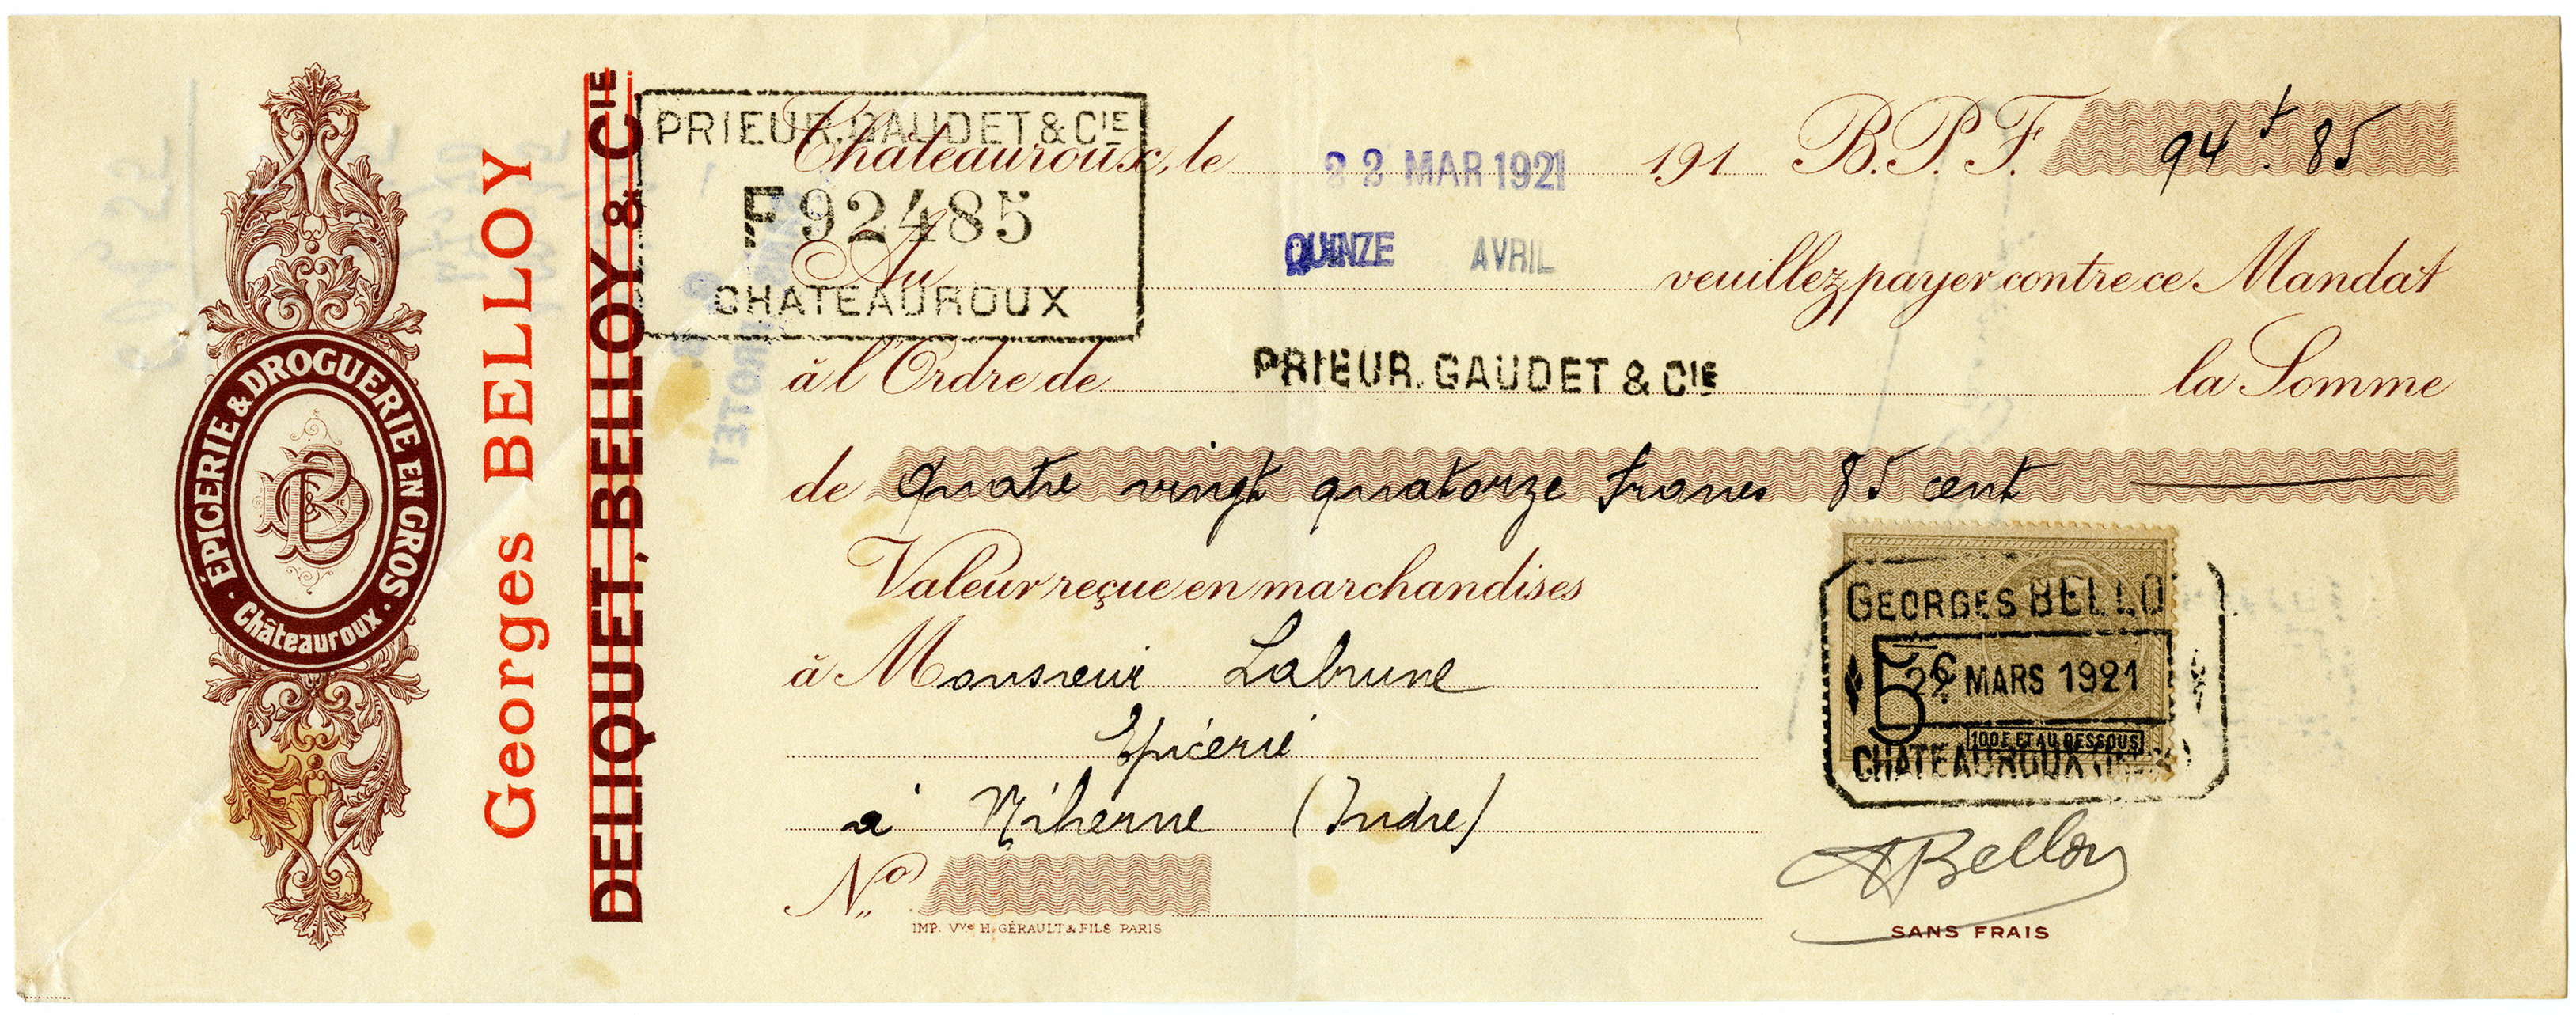 Vintage French Cheque Free Digital Graphic Old Design